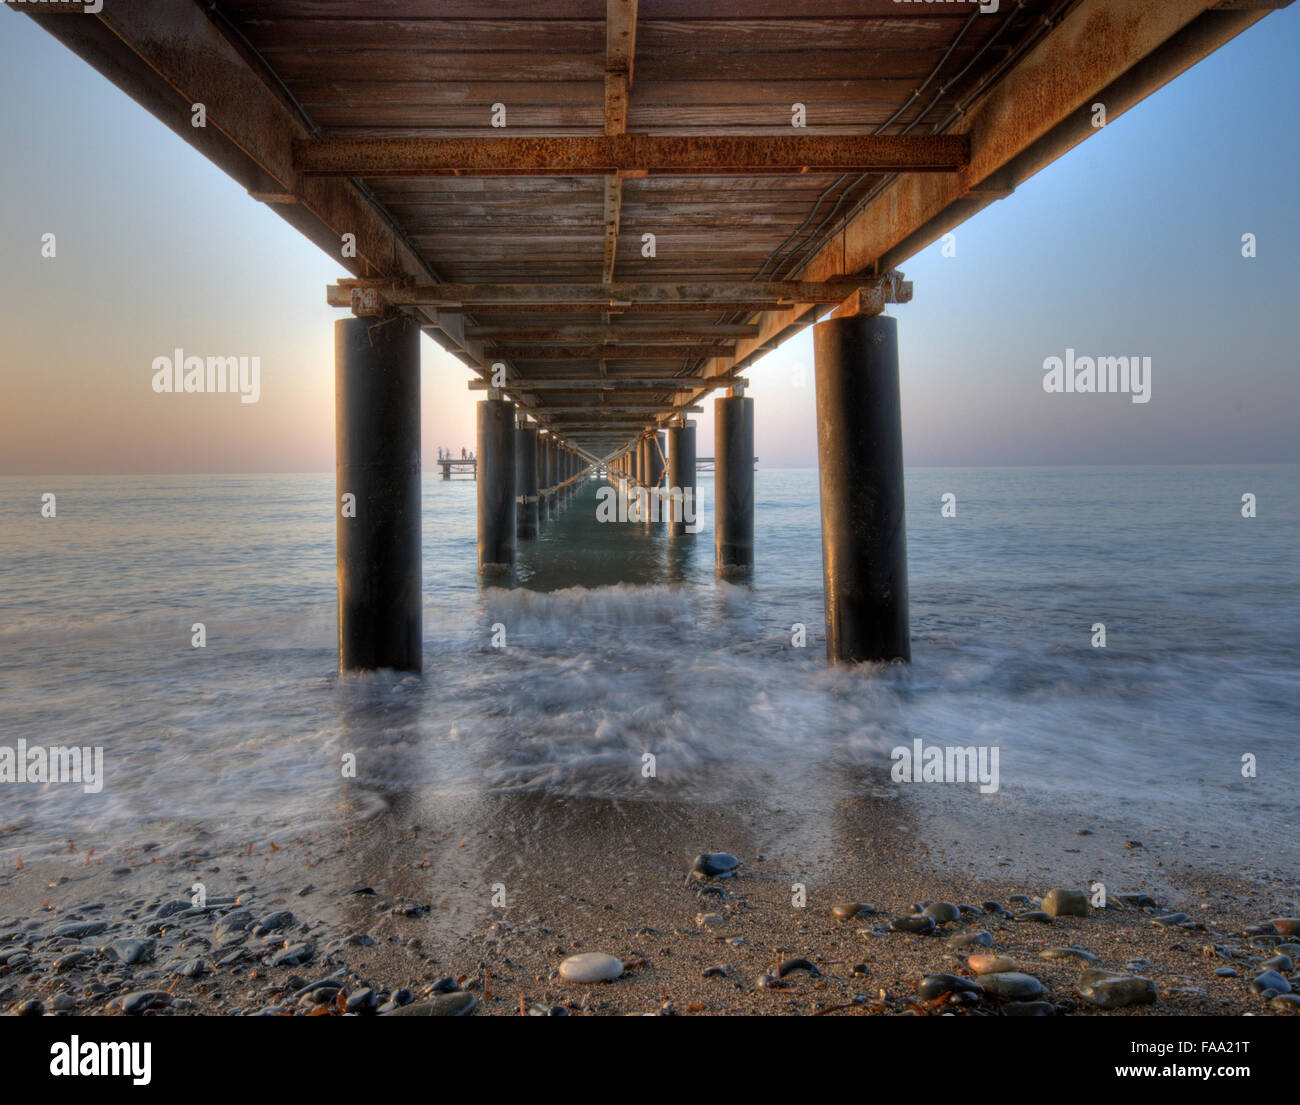 Rusty metallic  pier from sea level in horizontal composition creating a diagonal tunnel. - Stock Image